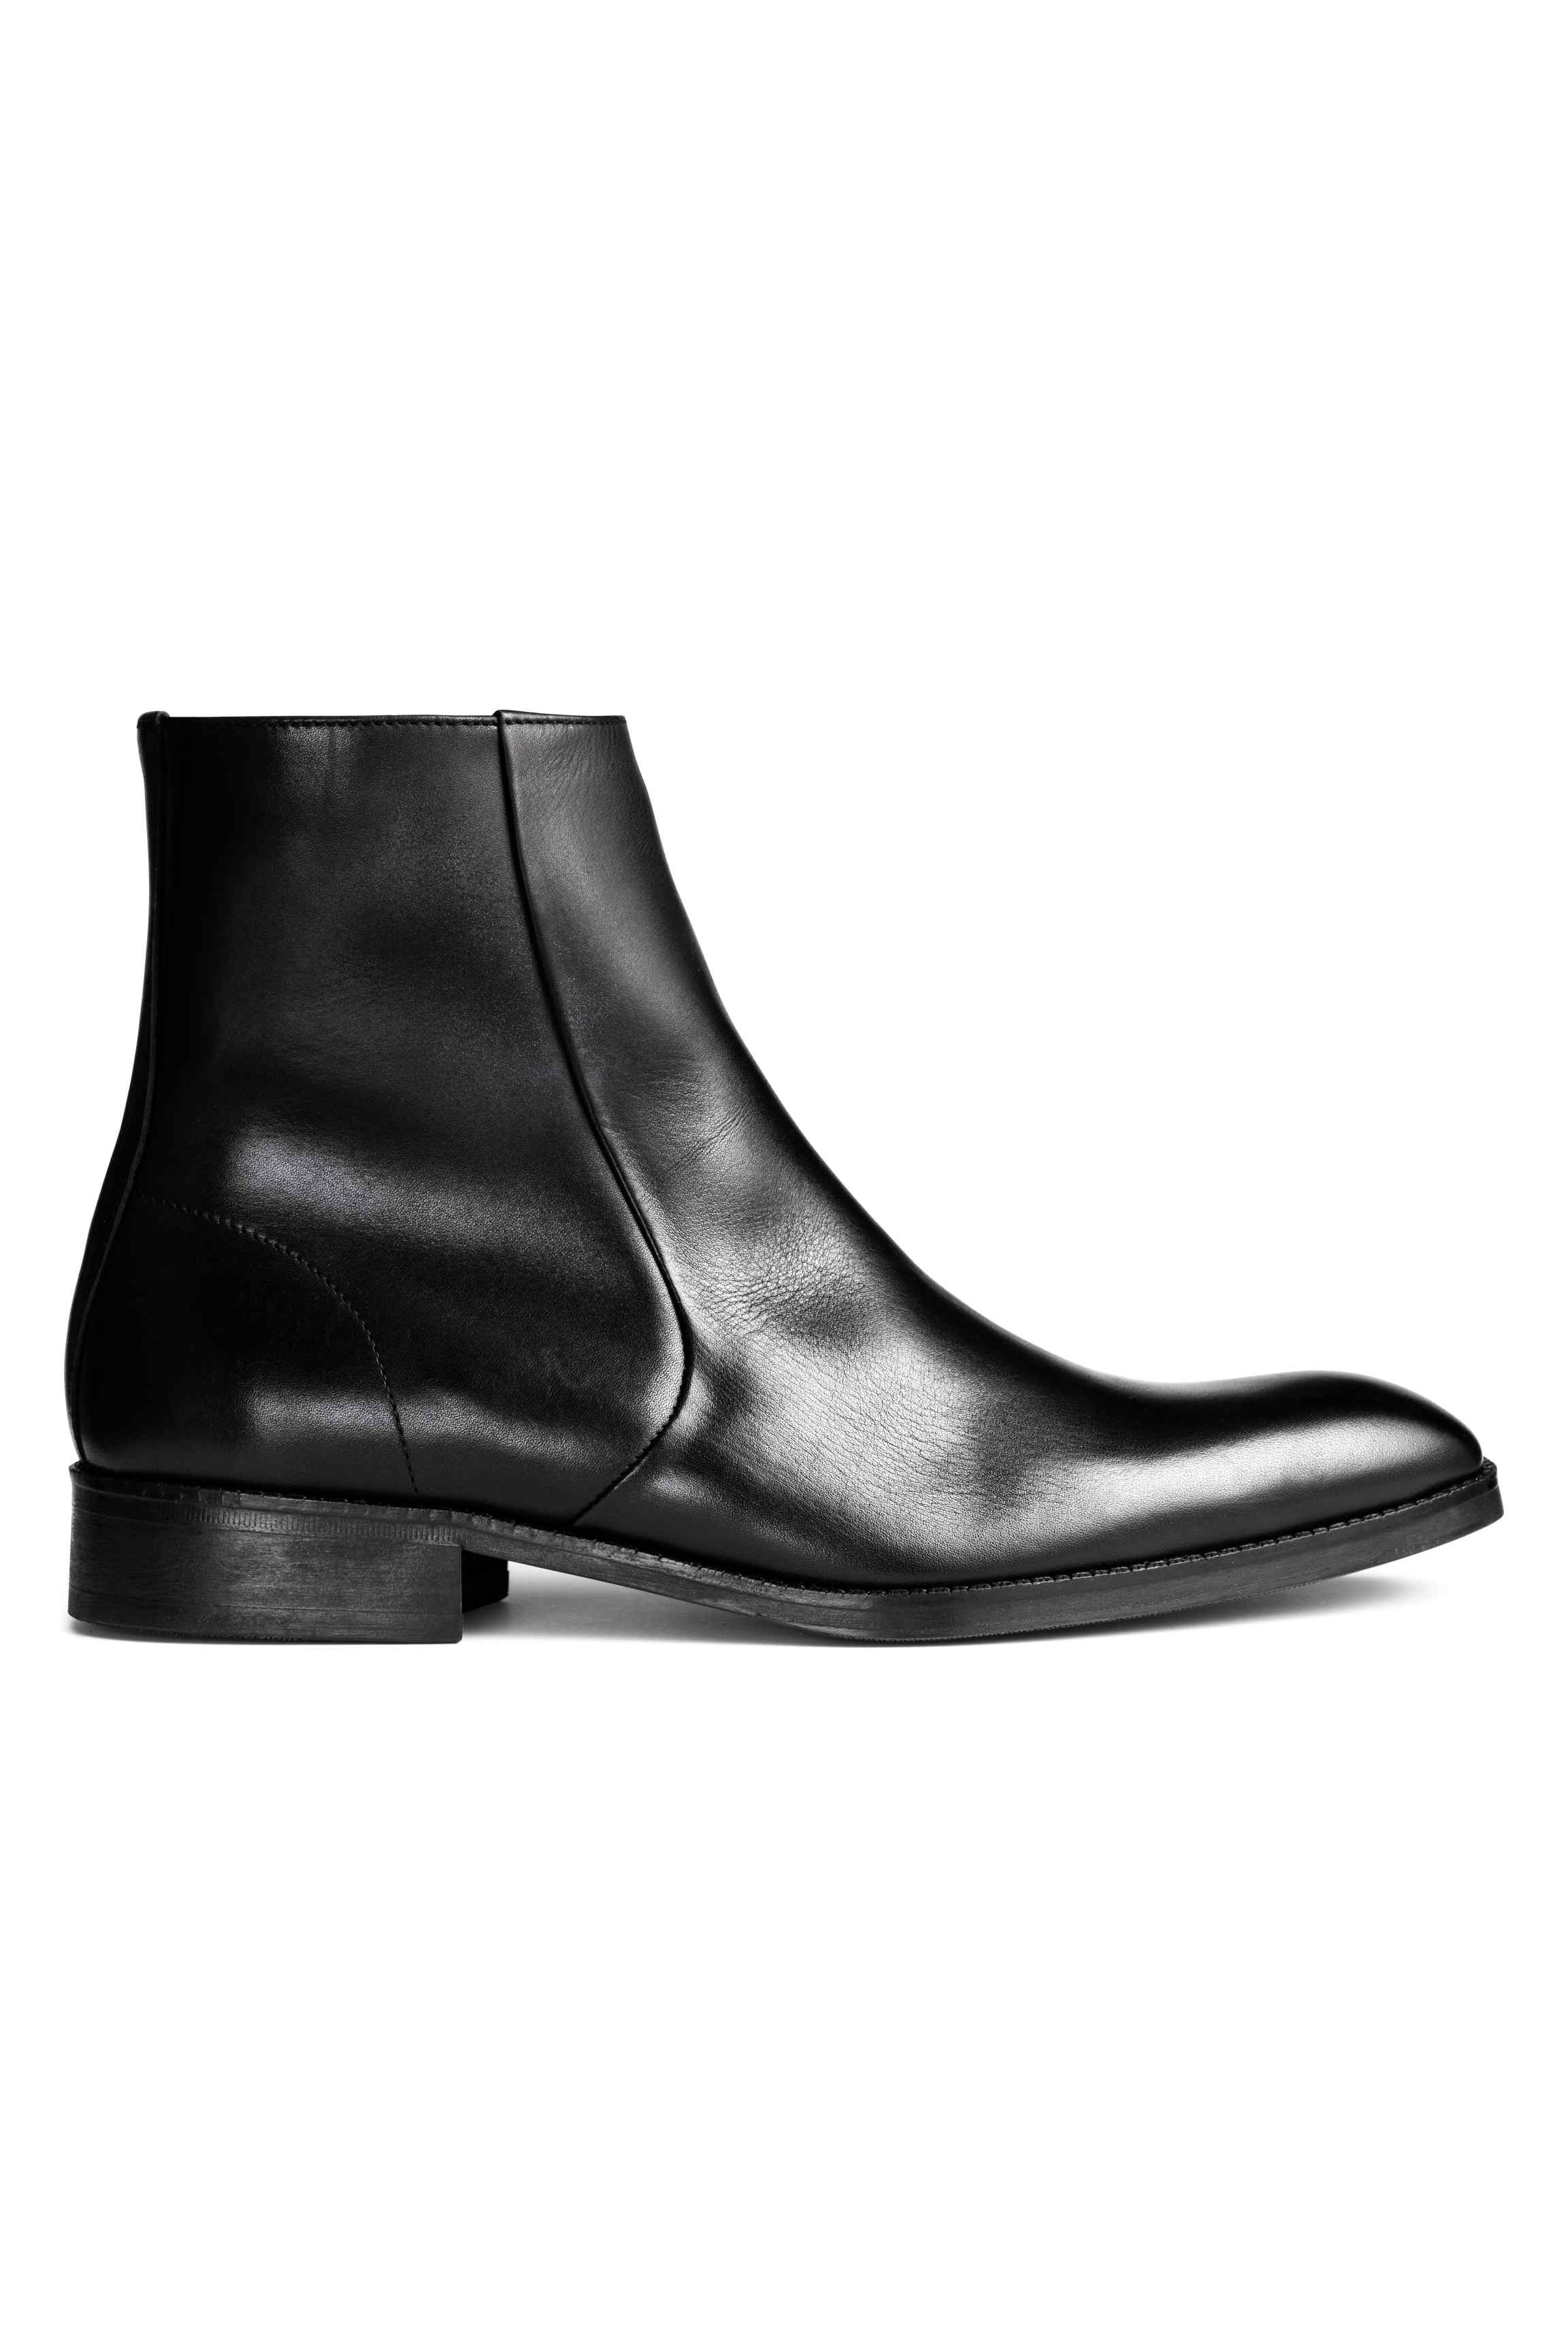 Leather ankle boots, £79.99 ( hm.com )